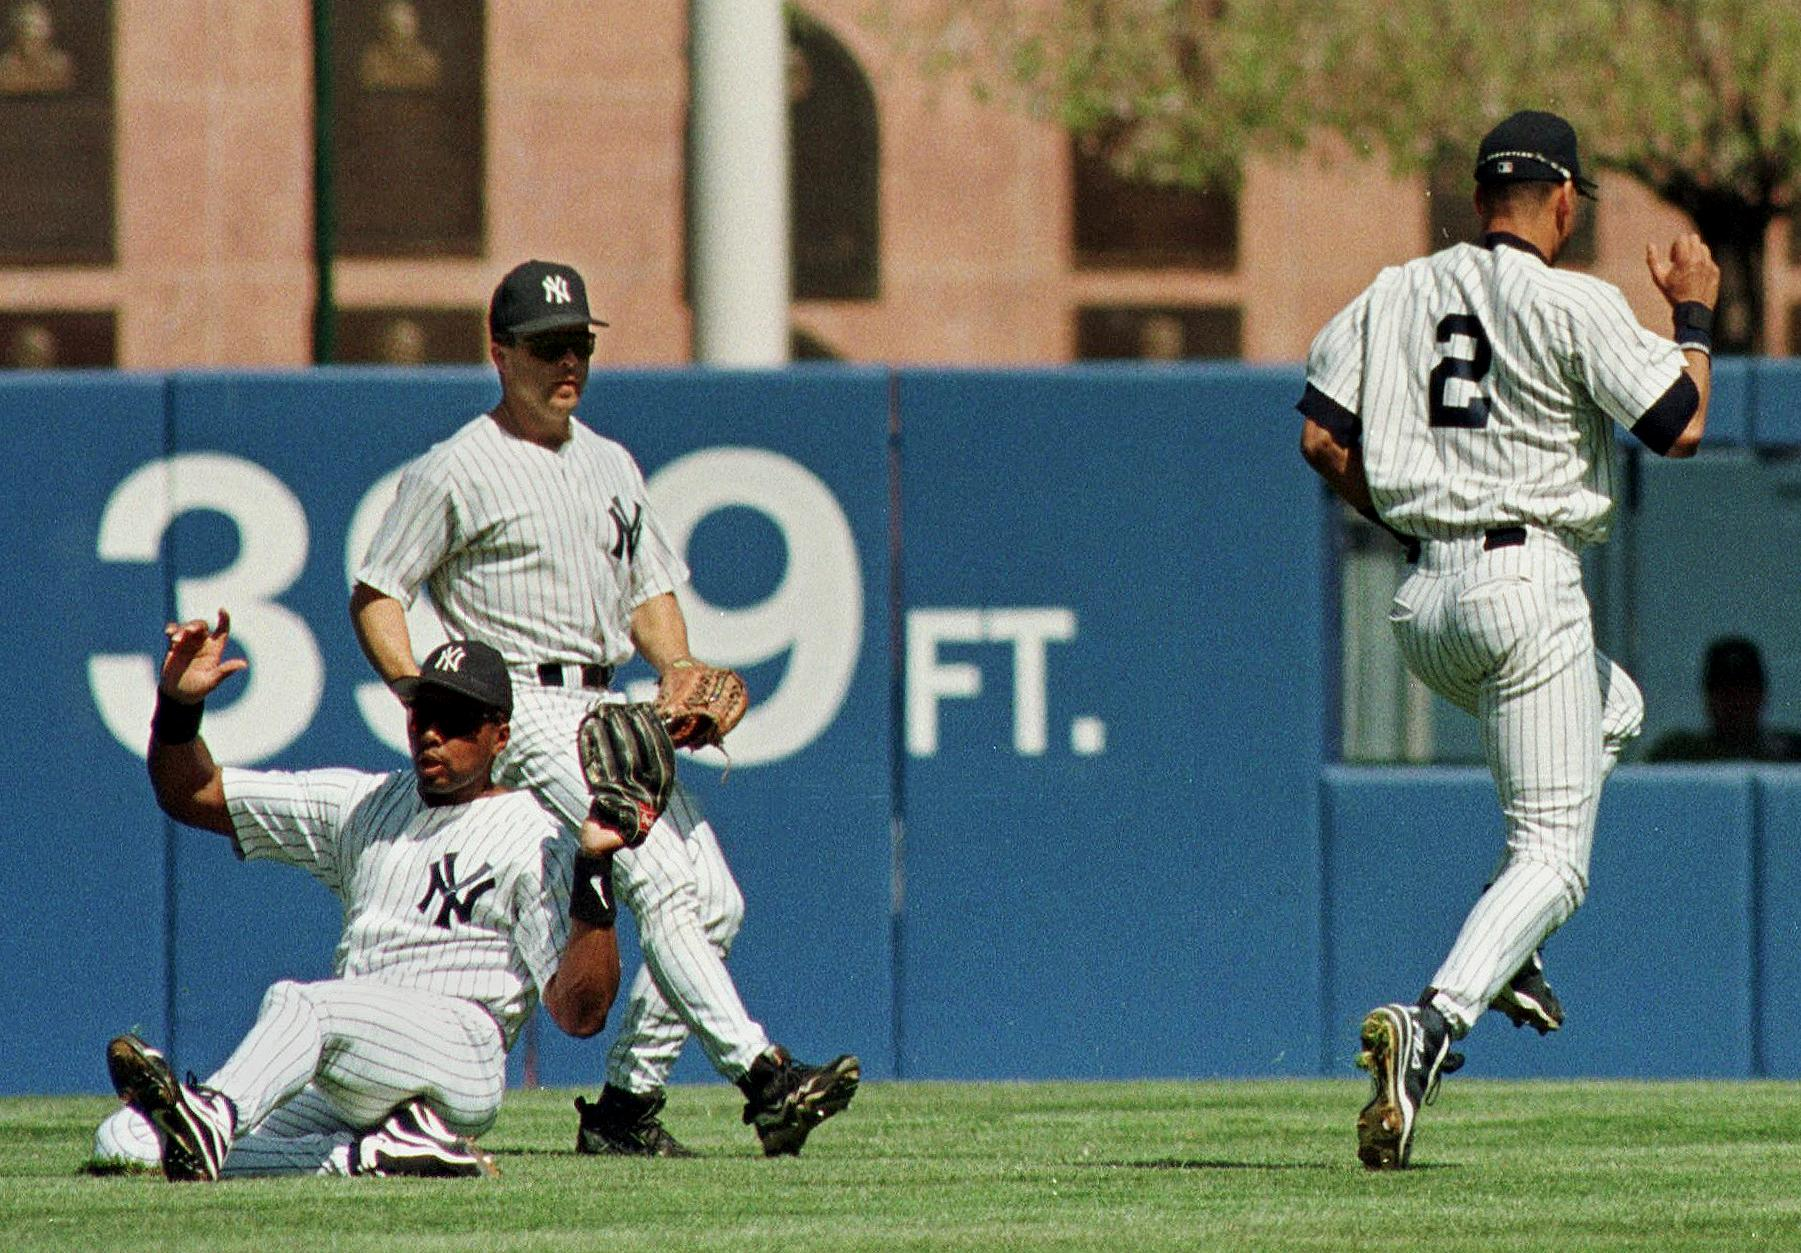 Derek Jeter Was Once Blasted by Chad Curtis and Told He Didn't Know How to Play the Game of Baseball